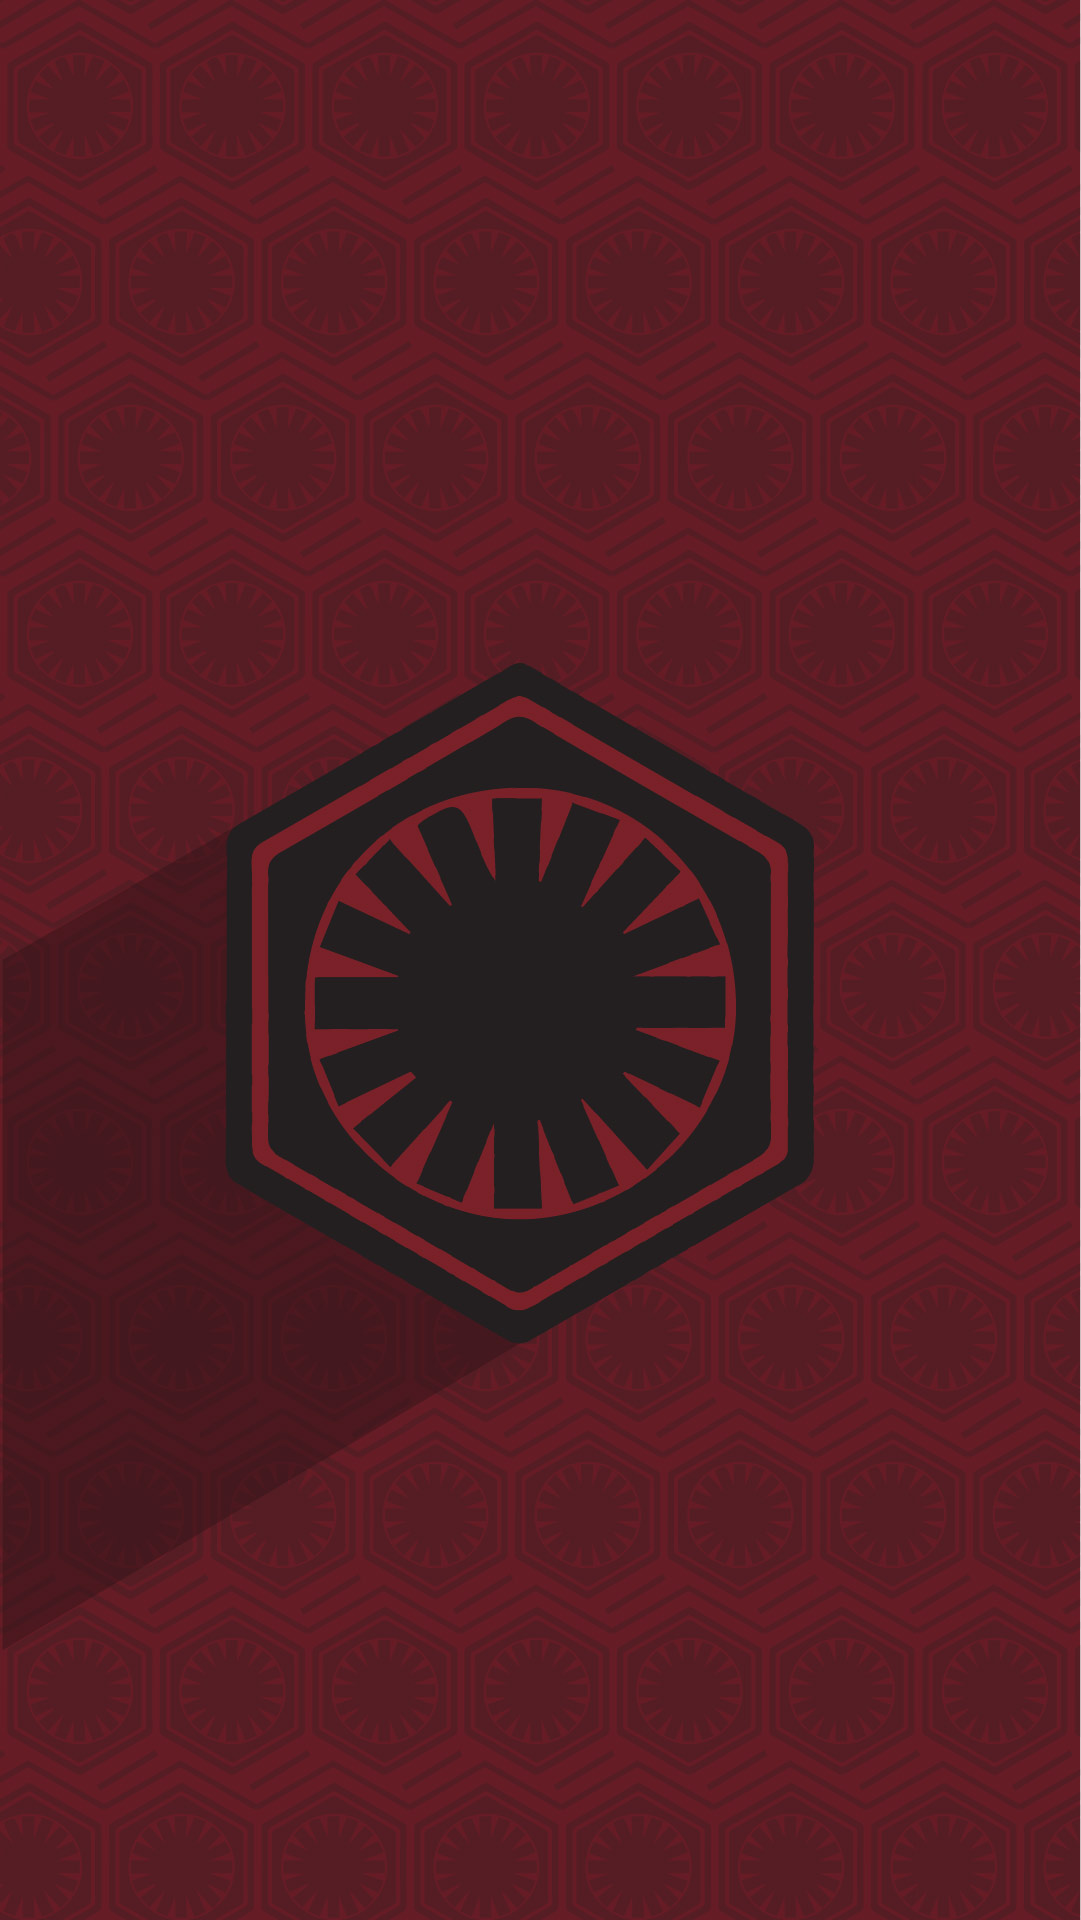 The Star System: Star Wars Wallpapers For Mobile Devices